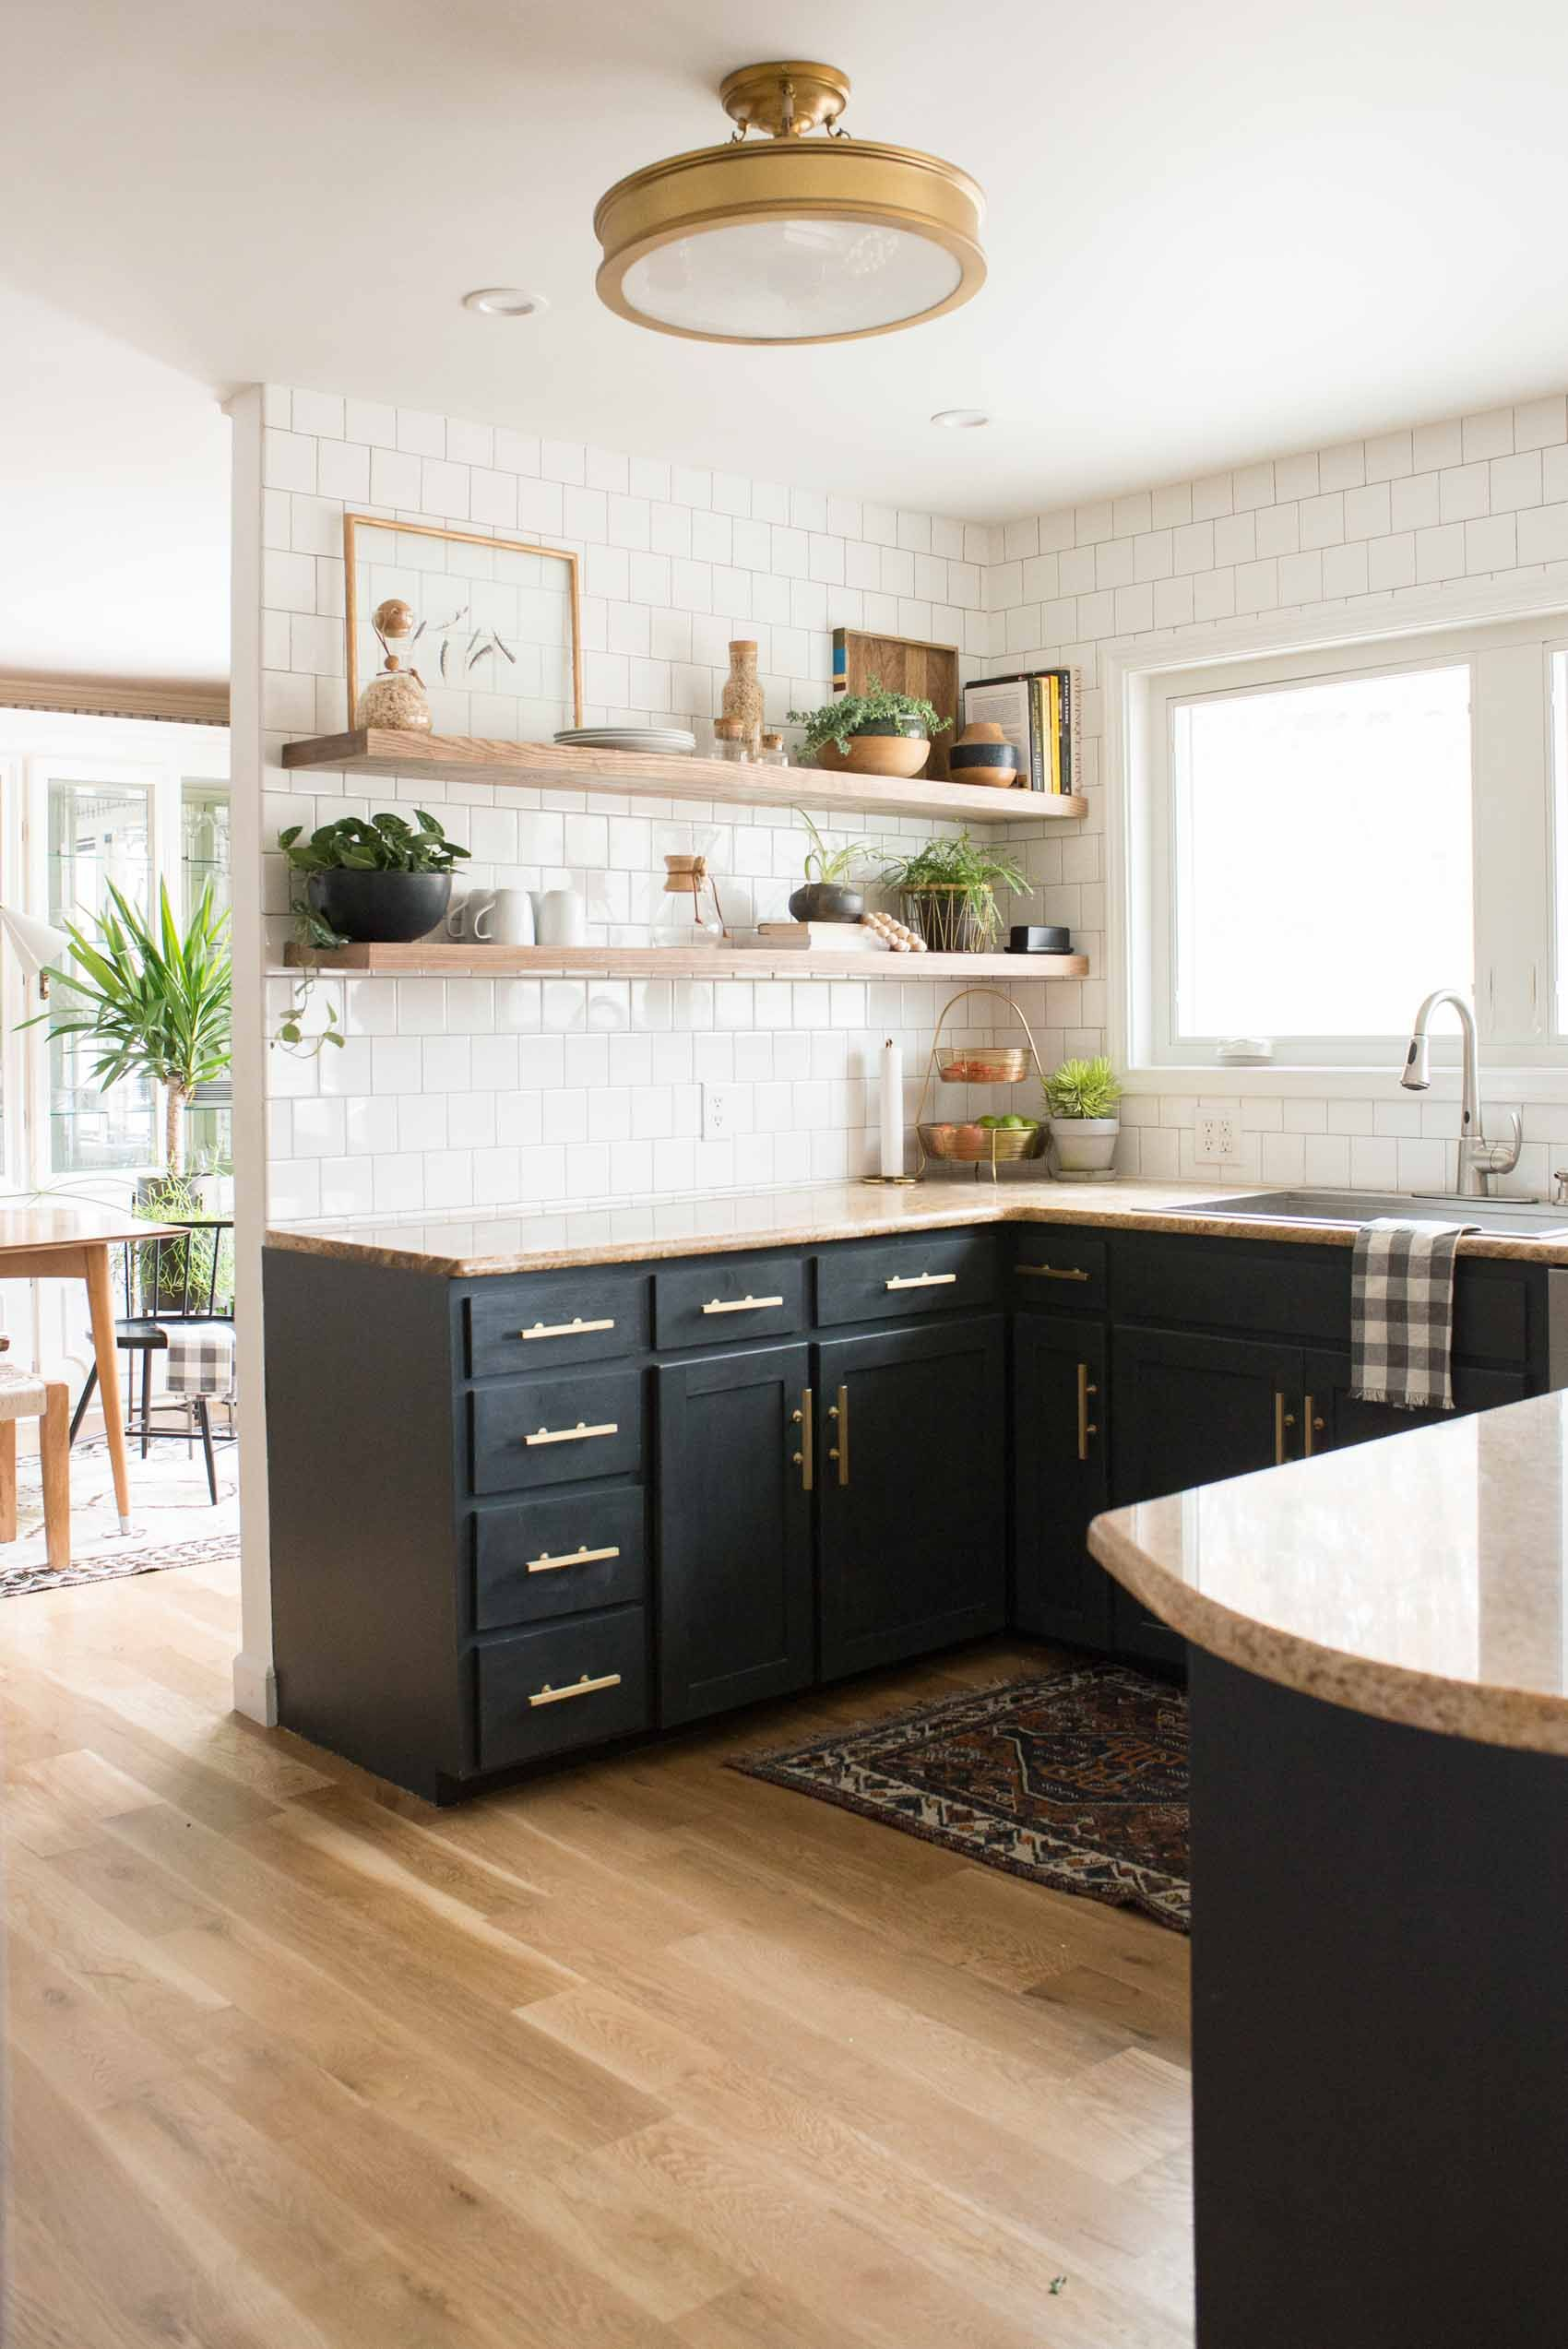 Our Guide to Organizing Your Kitchen—Once and for All